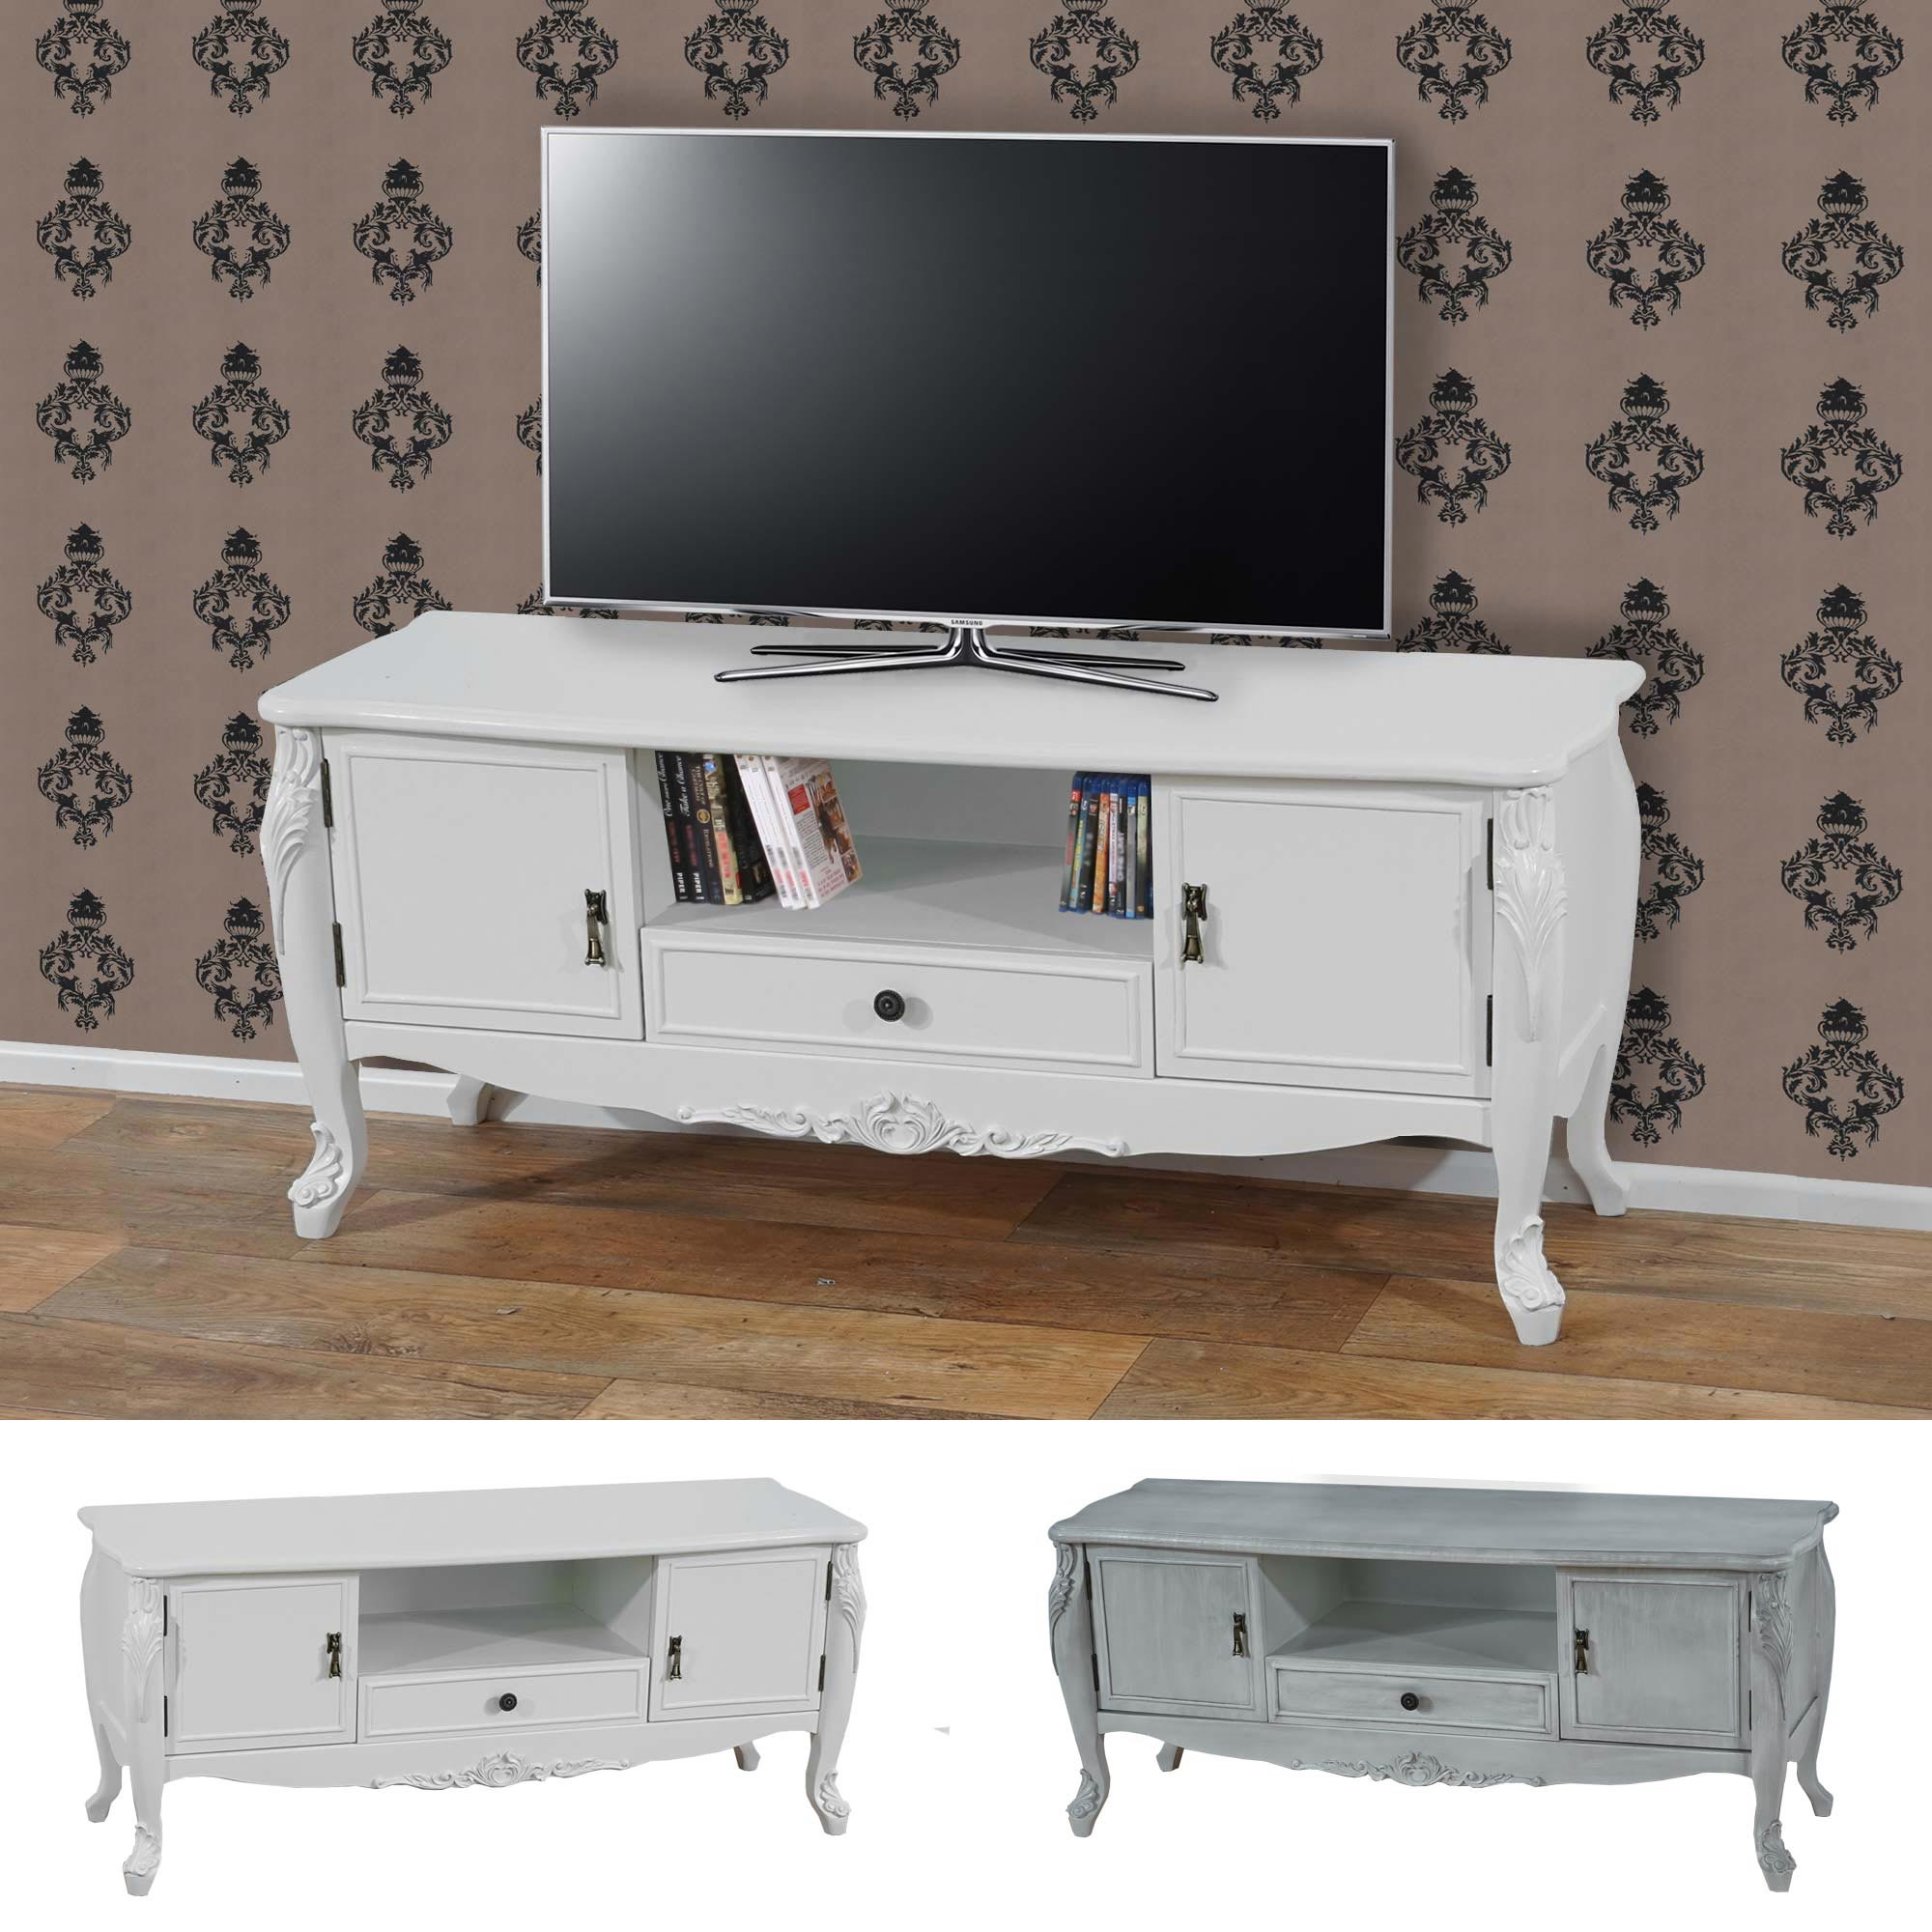 tv rack barletta fernsehtisch barock 54x122x42cm creme wei oder antik wei ebay. Black Bedroom Furniture Sets. Home Design Ideas